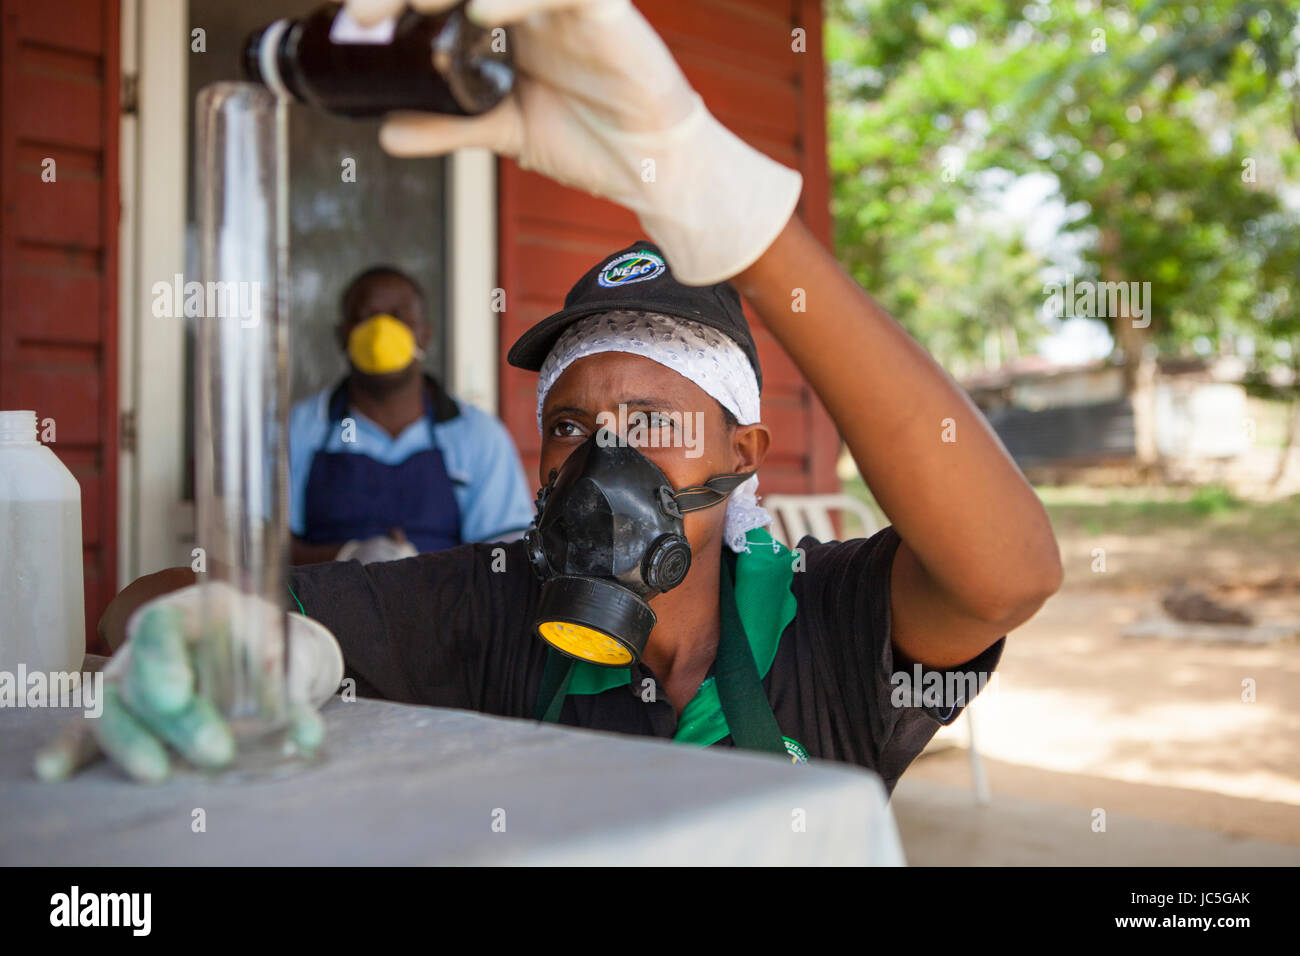 Female small business owner, making cleaning products, Tanzania, Africa - Stock Image